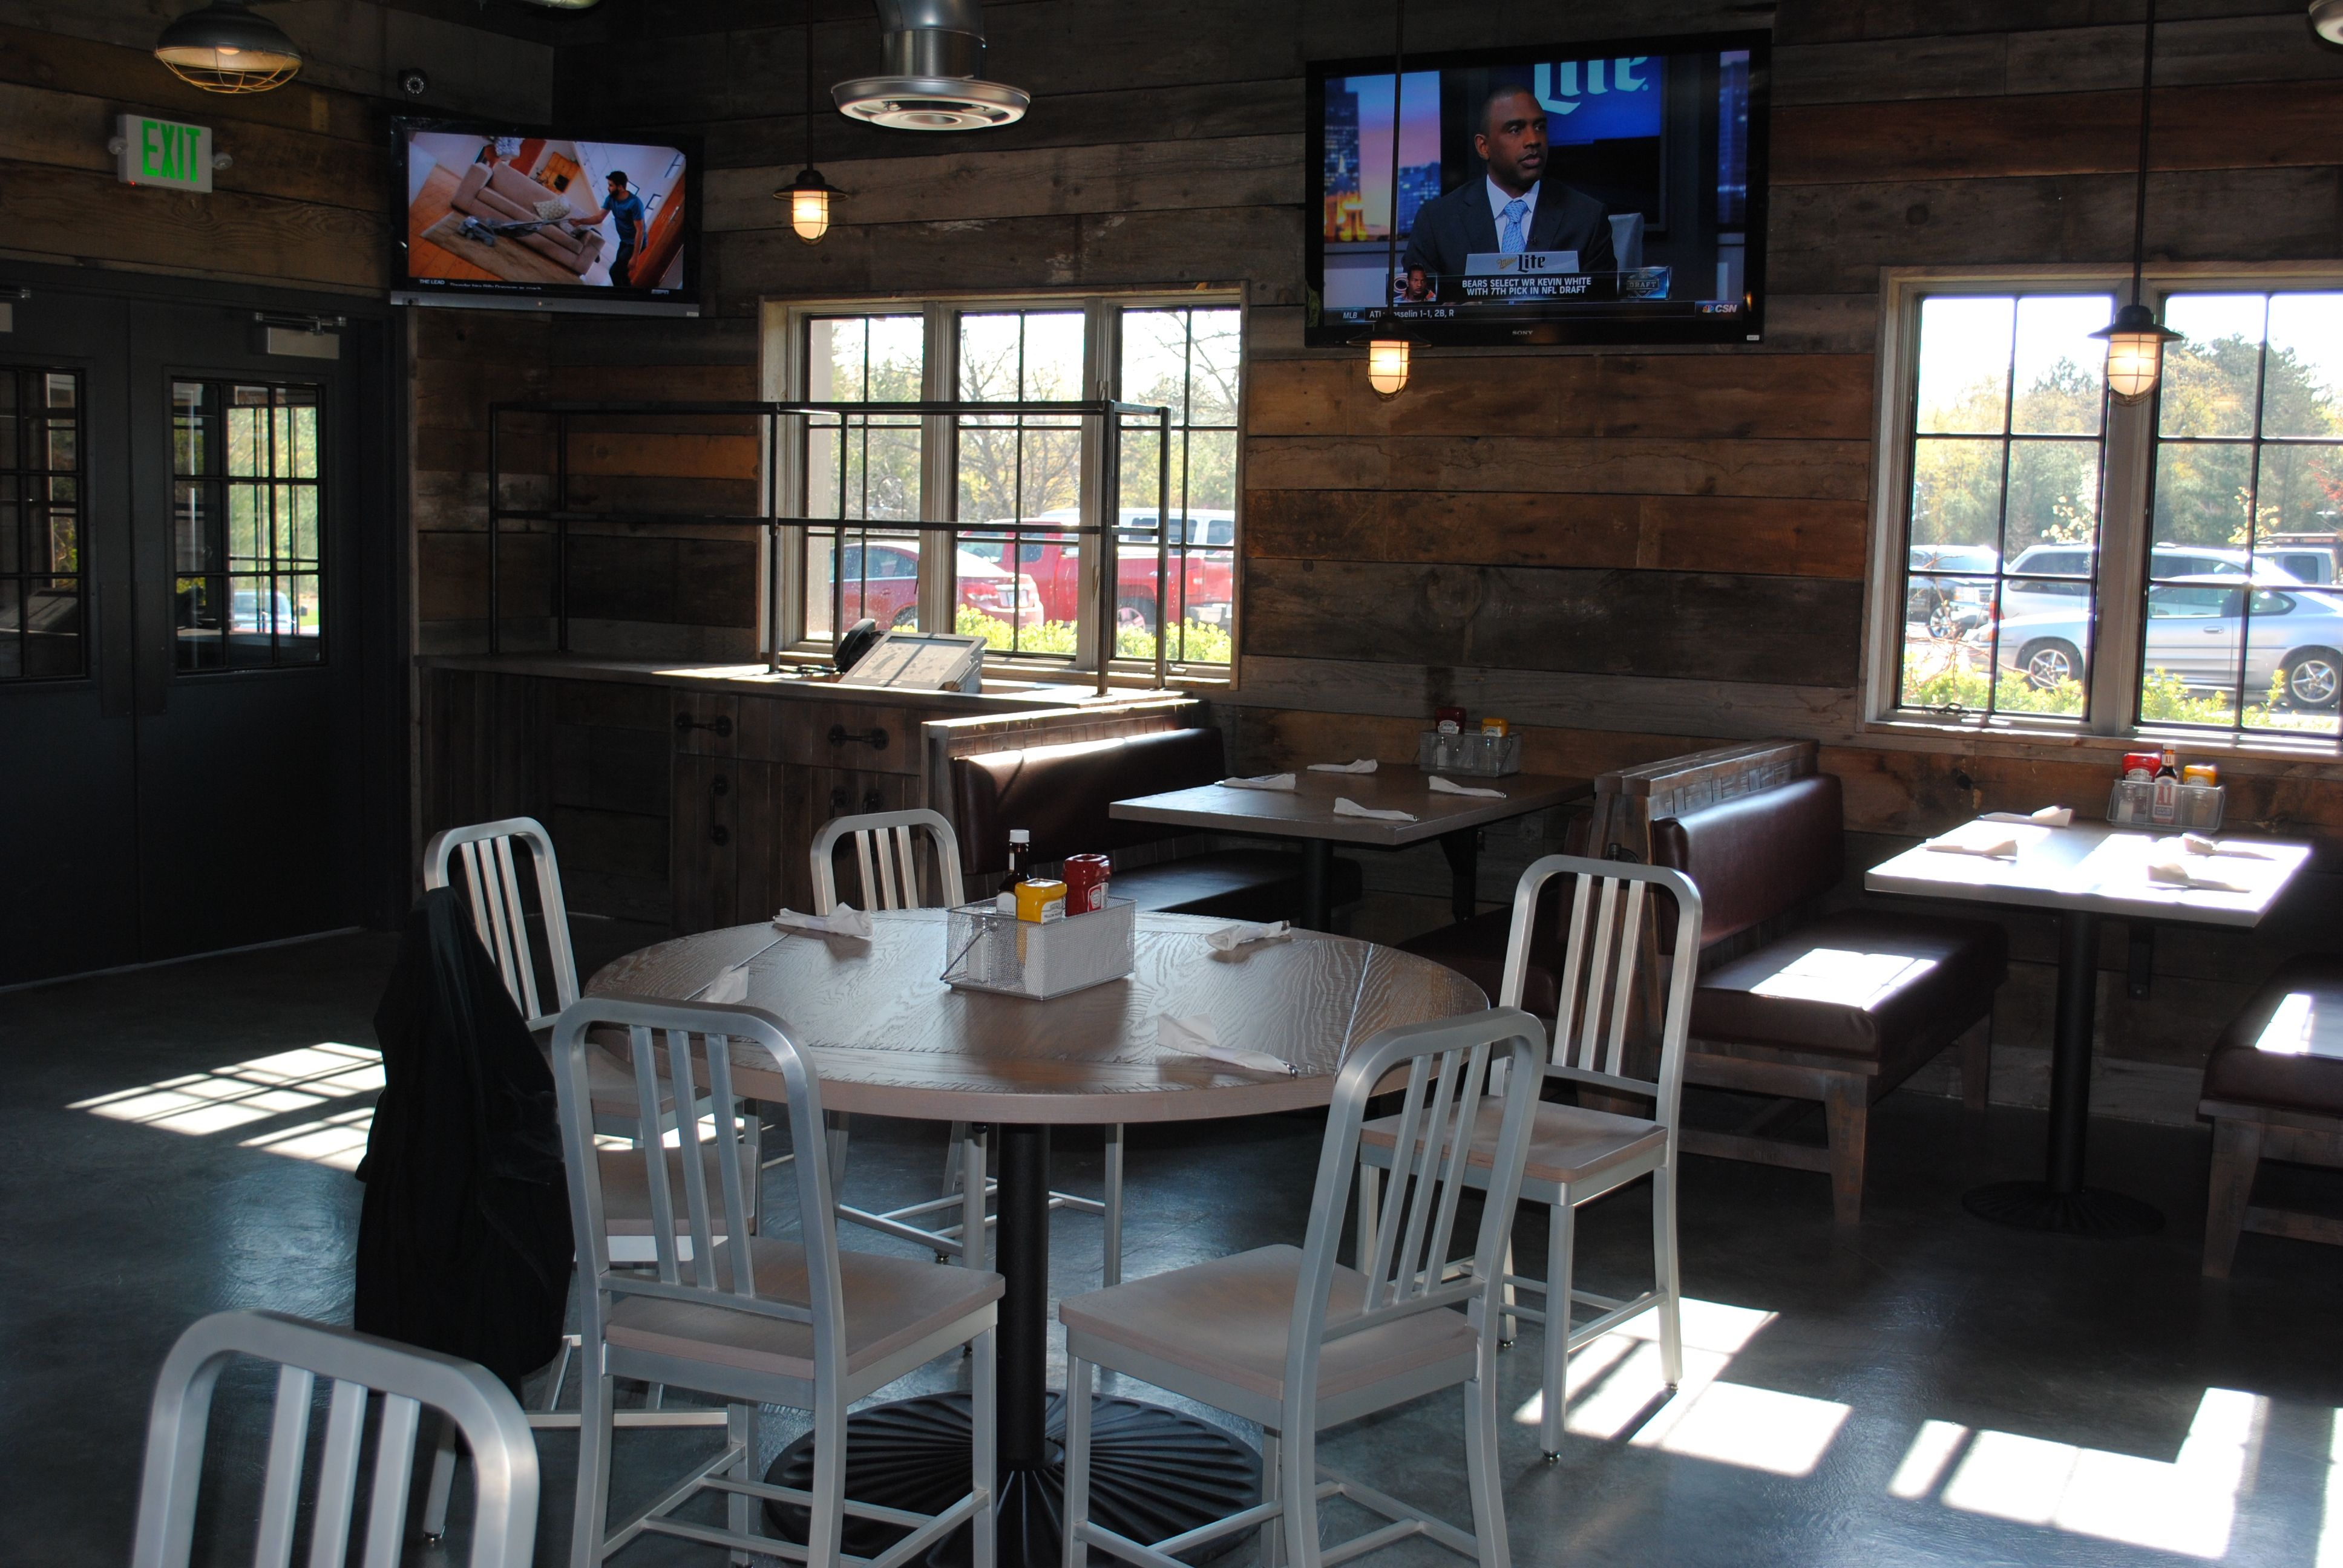 SP19 restaurant and bar at Sandy Pines golf club in DeMotte Indiana